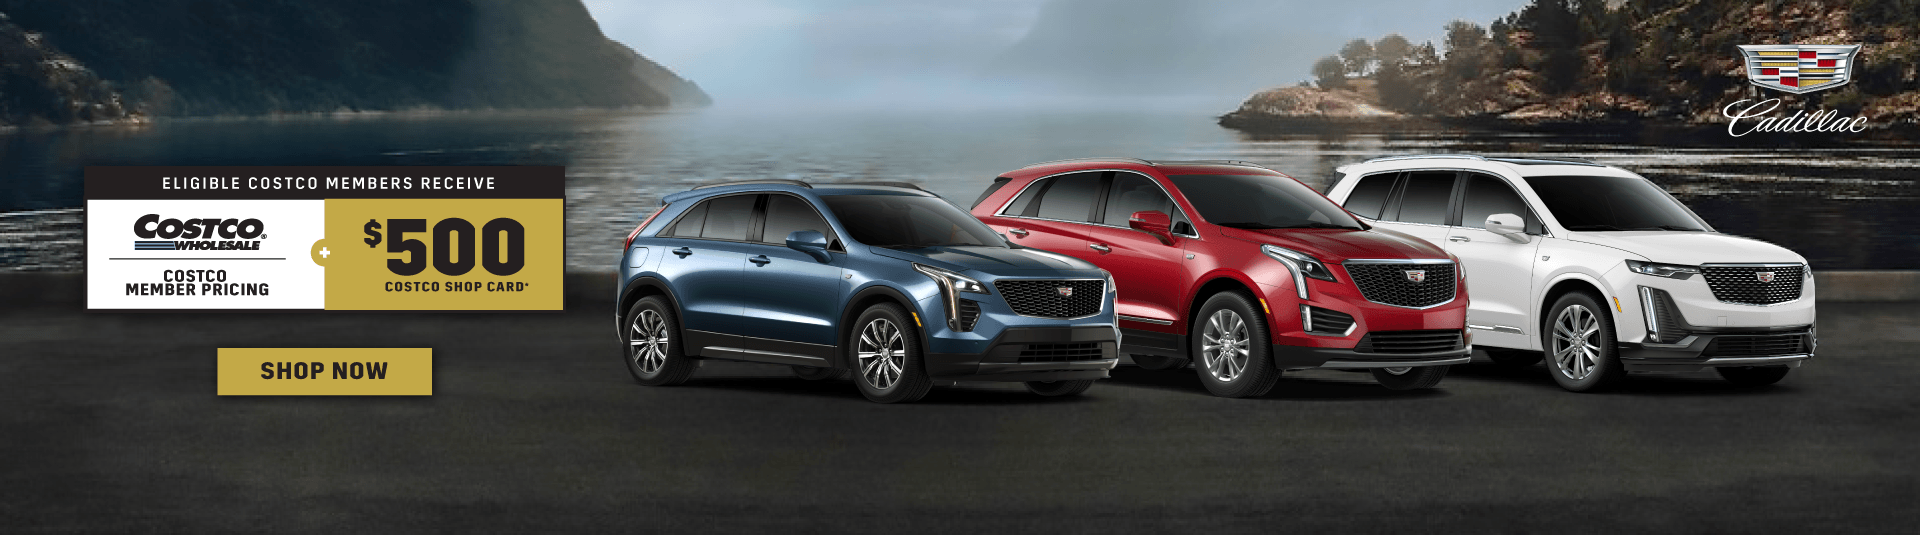 2020 Cadillac Offers In Toronto